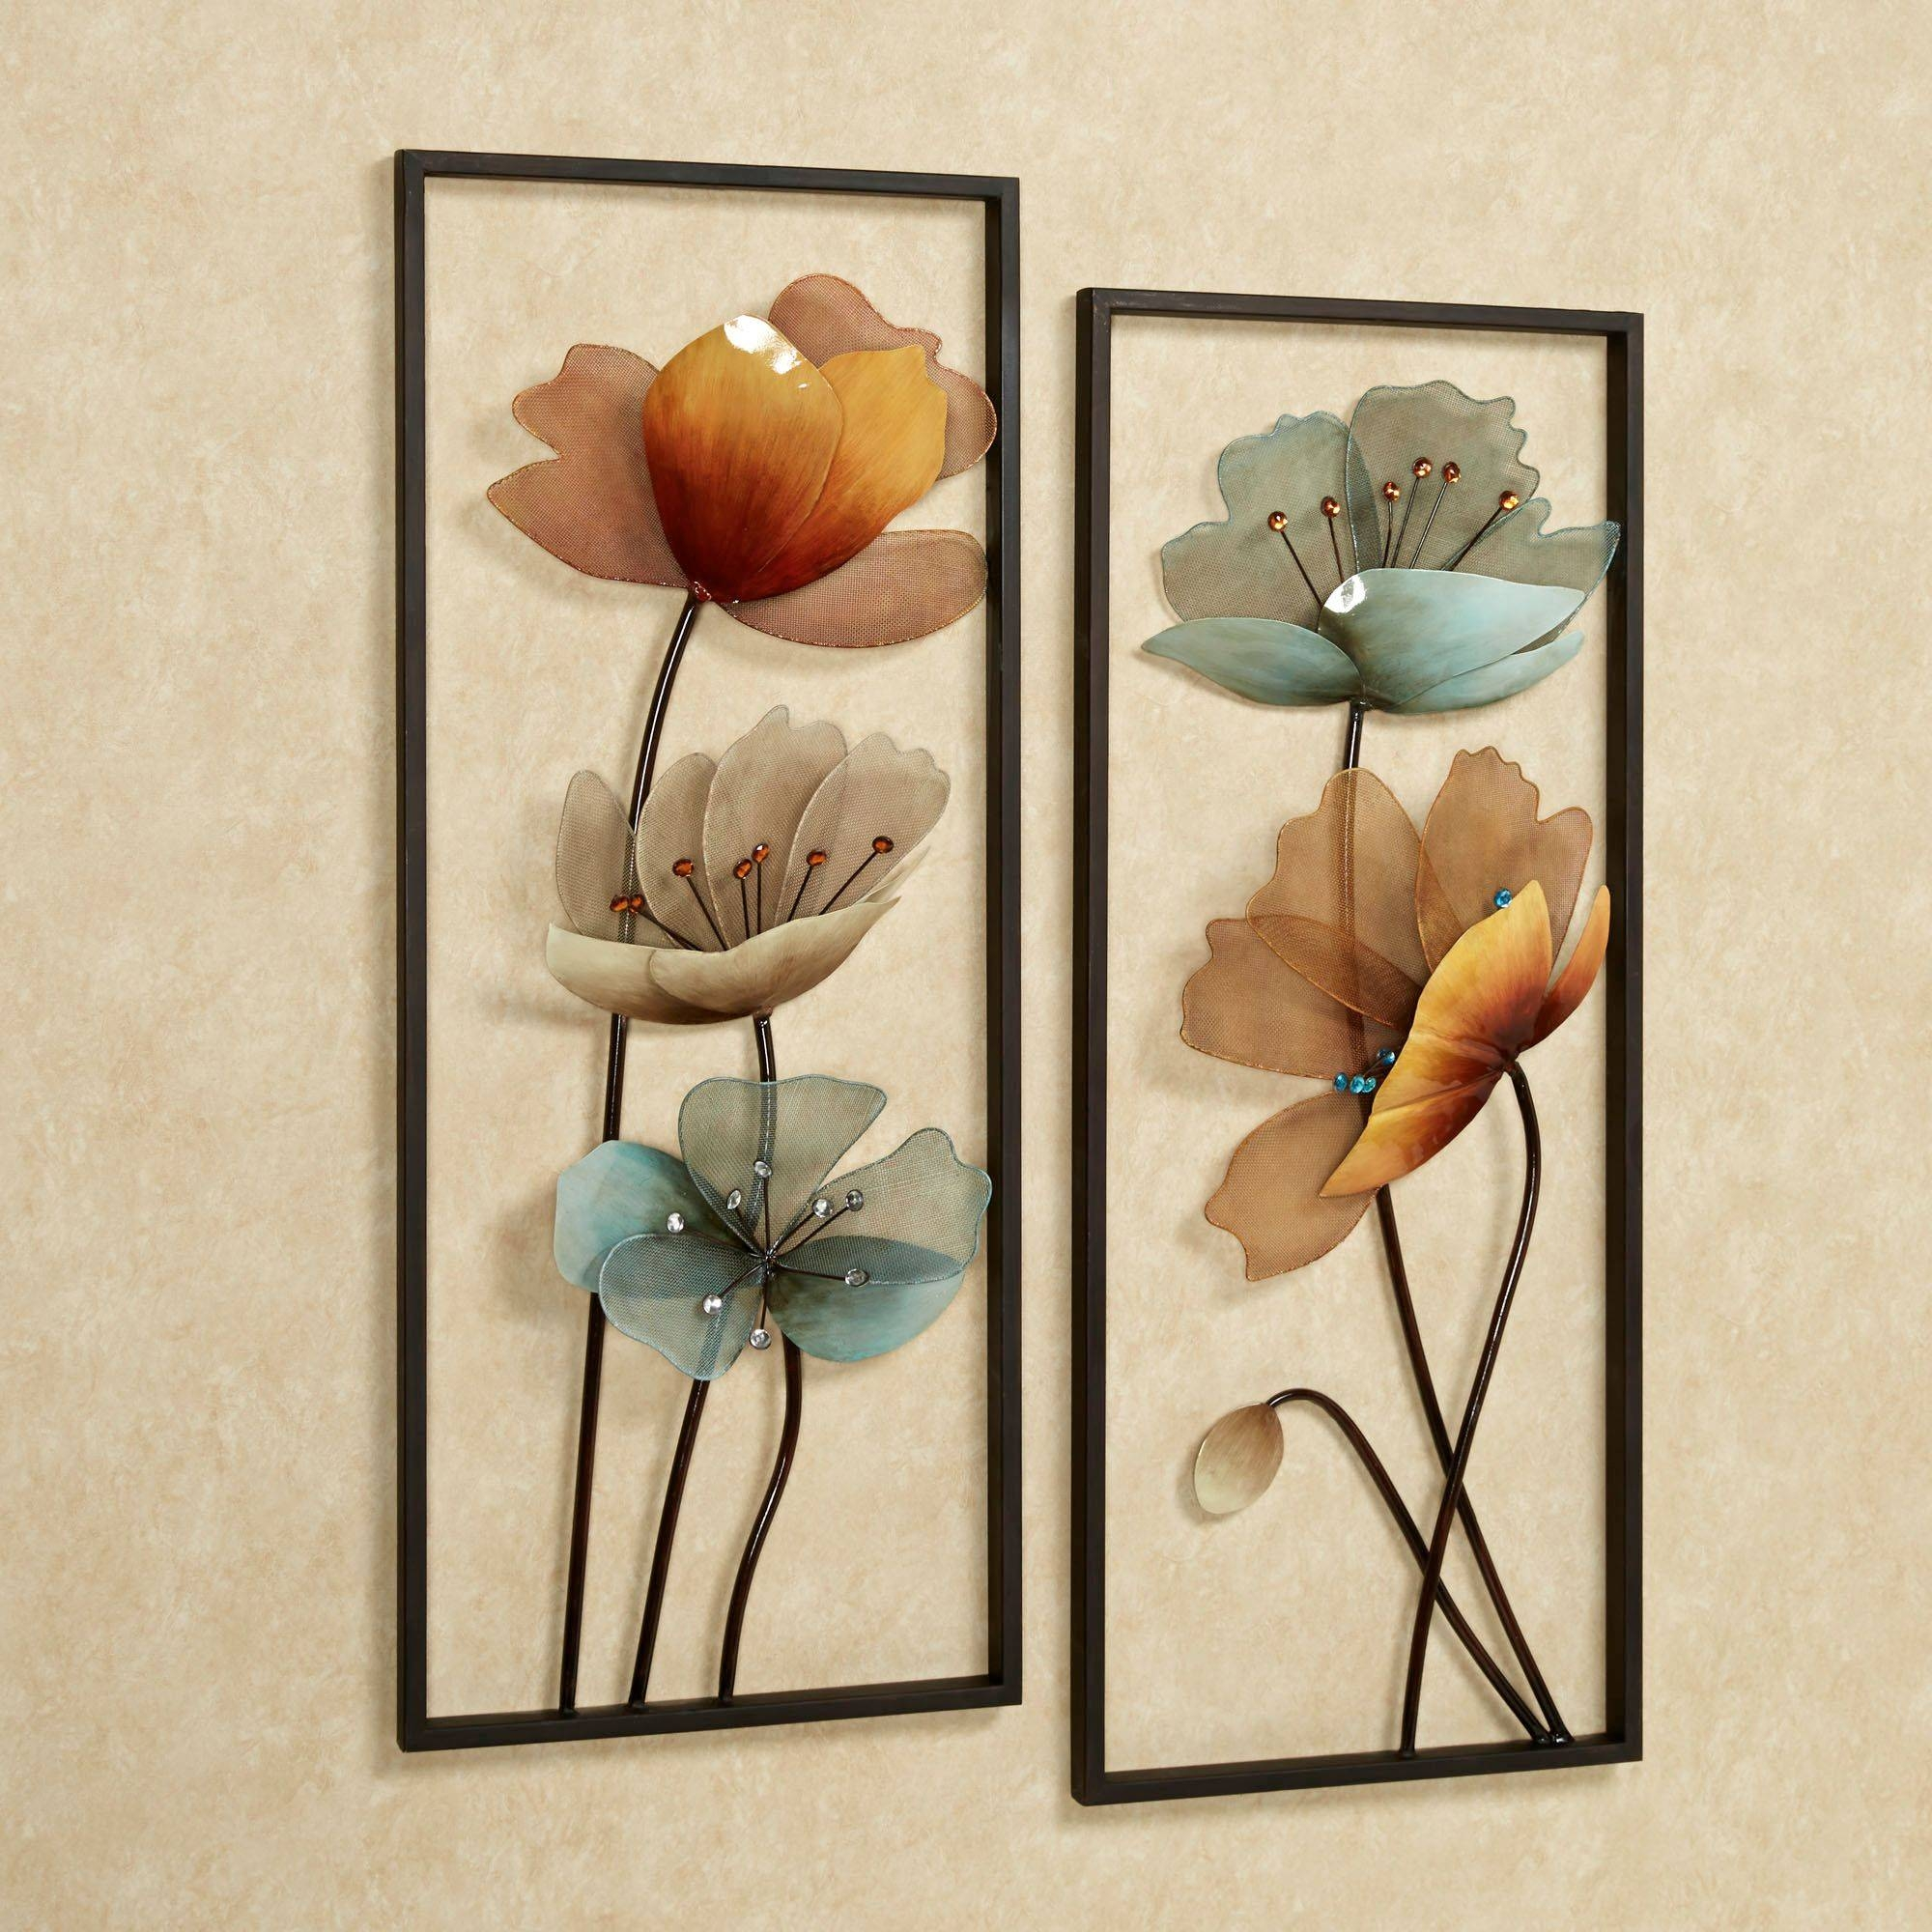 35 Vertical Metal Wall Art My Wall Of Life Inside Latest Small Metal Wall Art Decor (View 1 of 20)